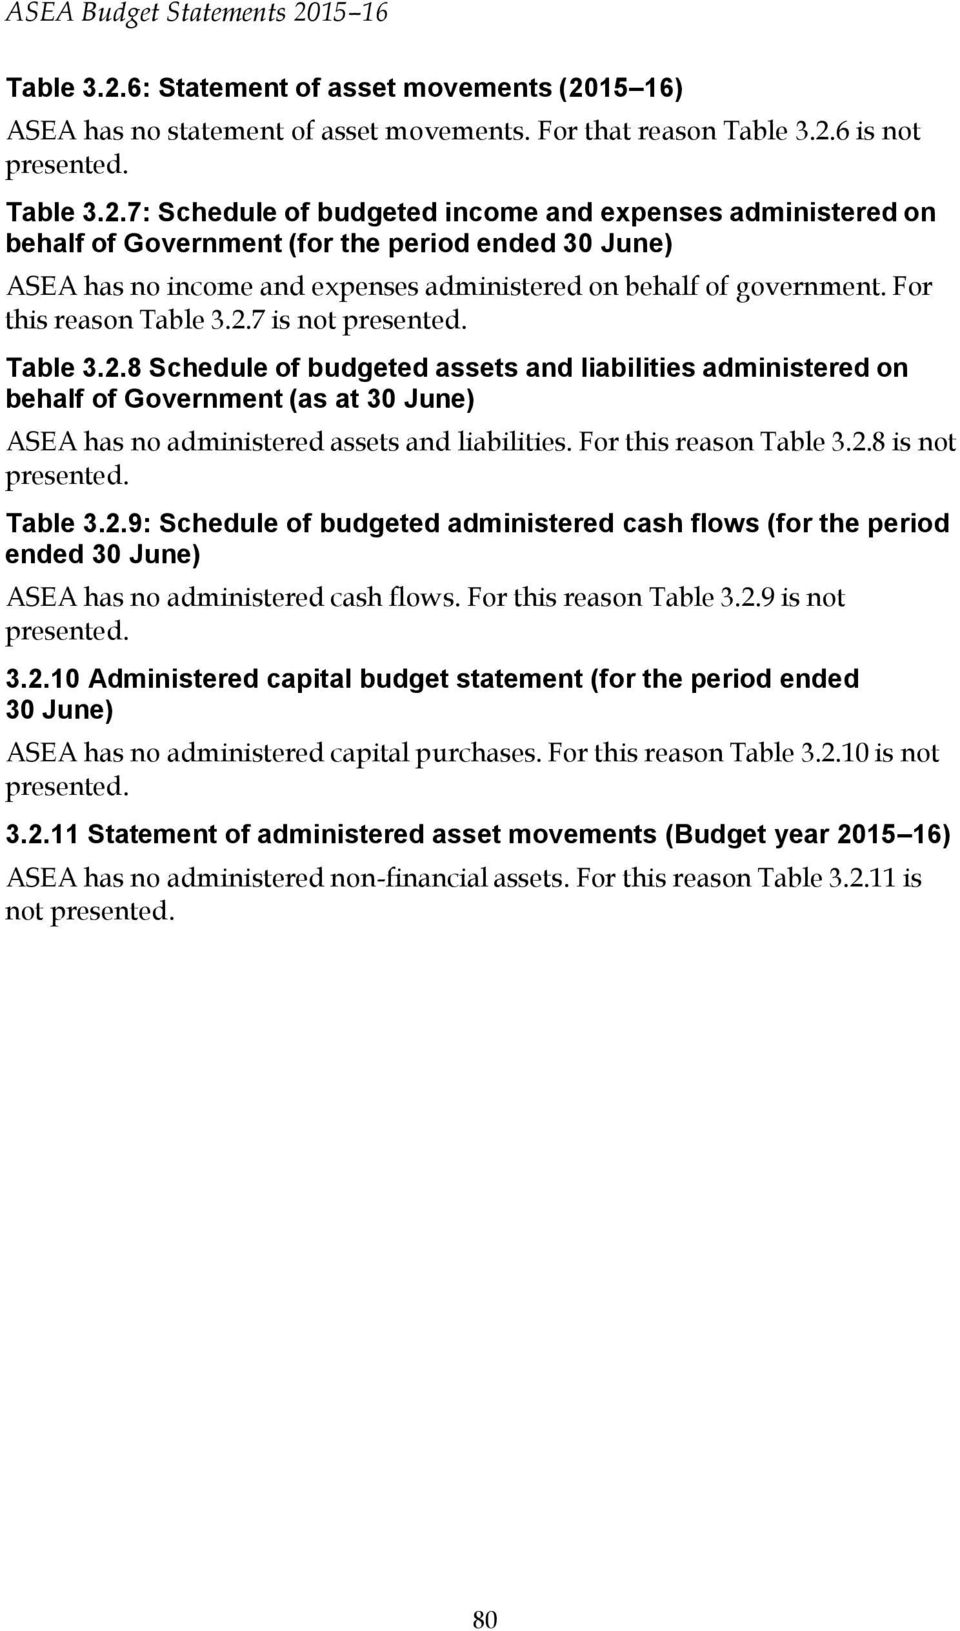 For this reason Table 3.2.8 is not presented. Table 3.2.9: Schedule of budgeted administered cash flows (for the period ended 30 June) ASEA has no administered cash flows. For this reason Table 3.2.9 is not presented.